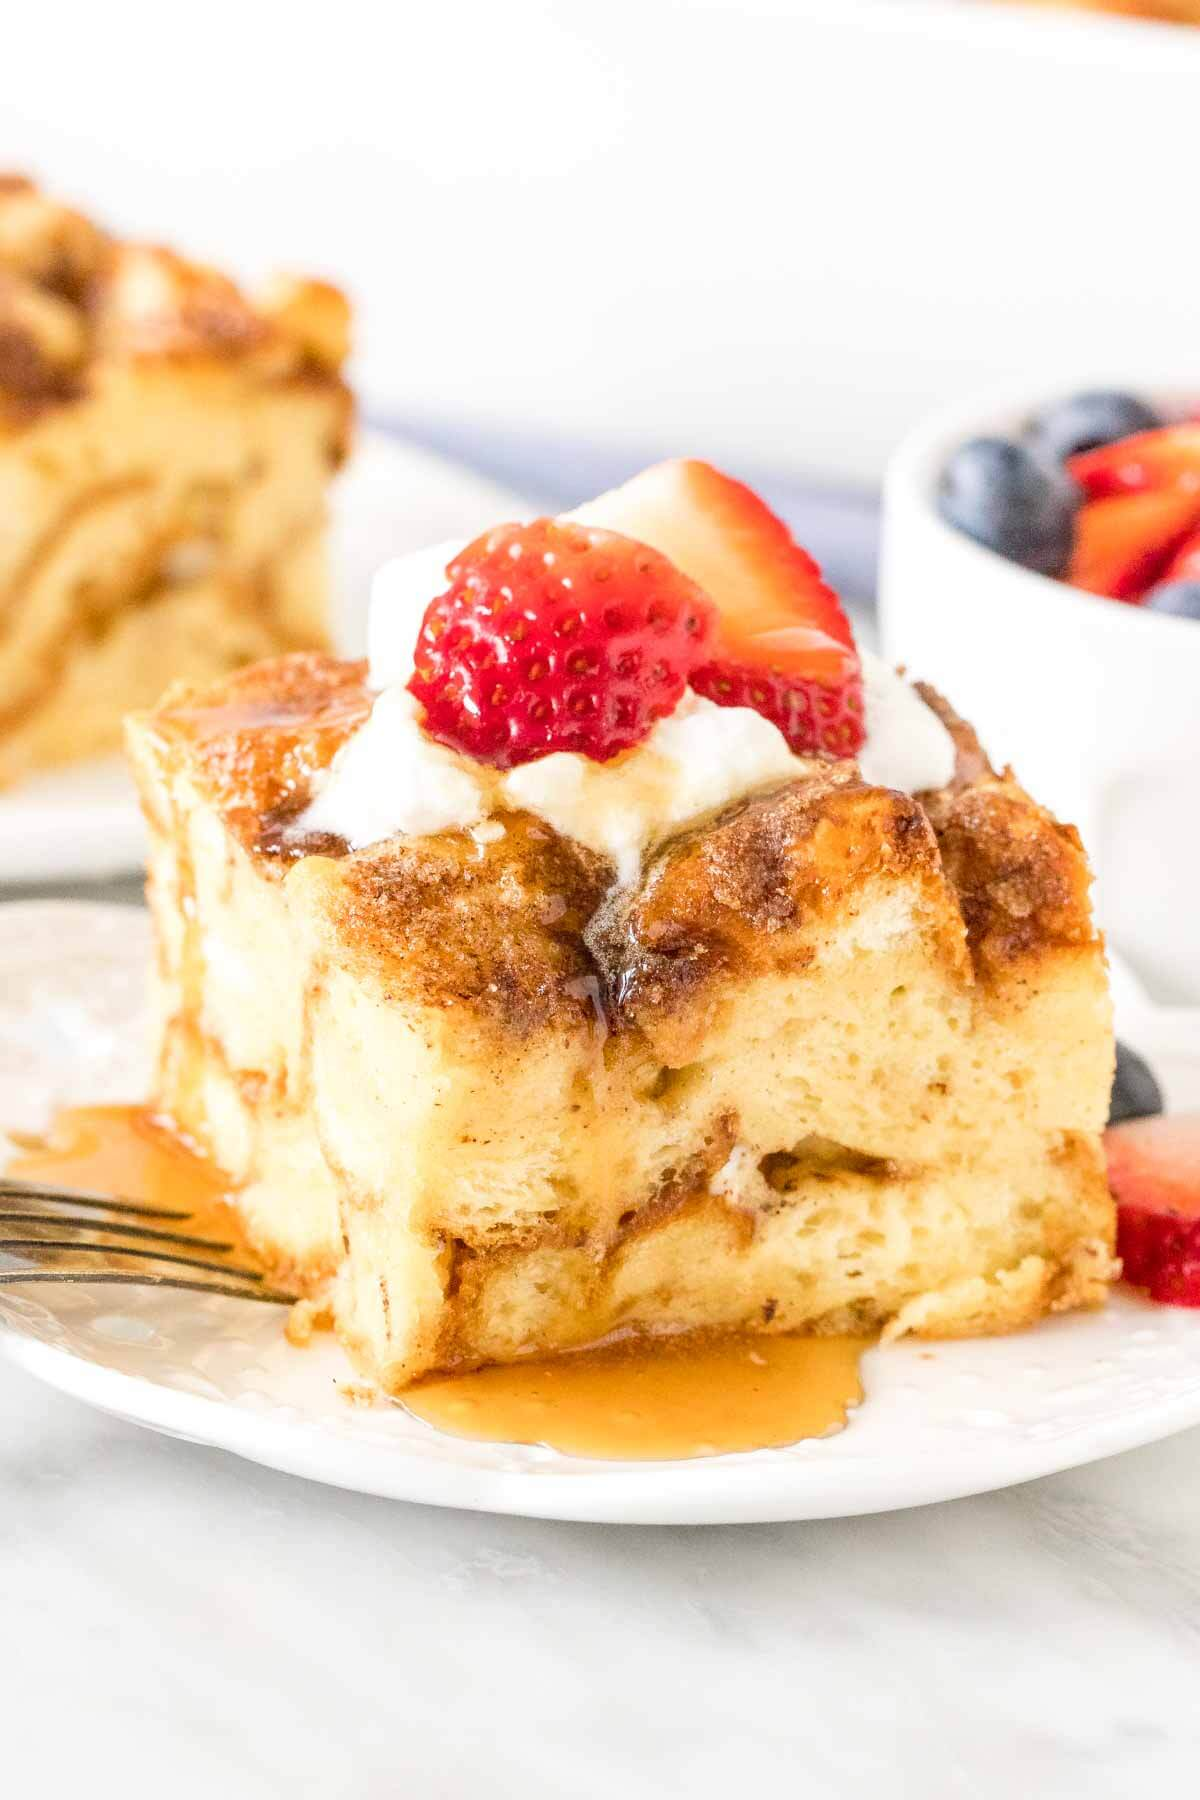 Slice of french toast bake with whipped cream, strawberries and maple syrup on top on a plate.